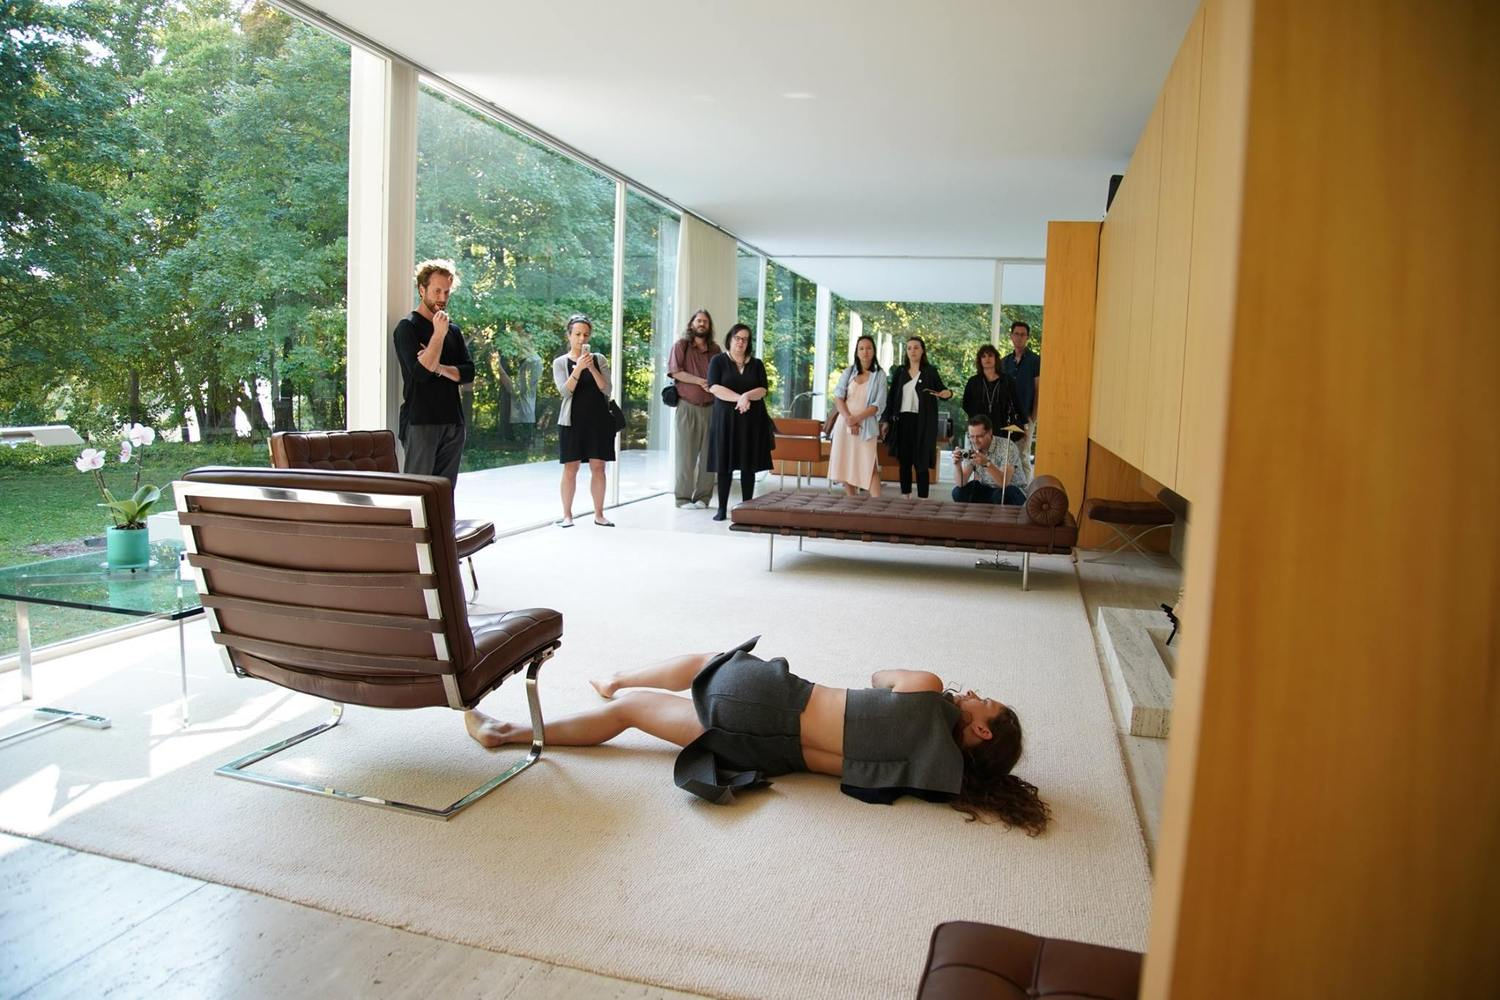 Gallery Of Choreographed Performance At Farnsworth House Explores